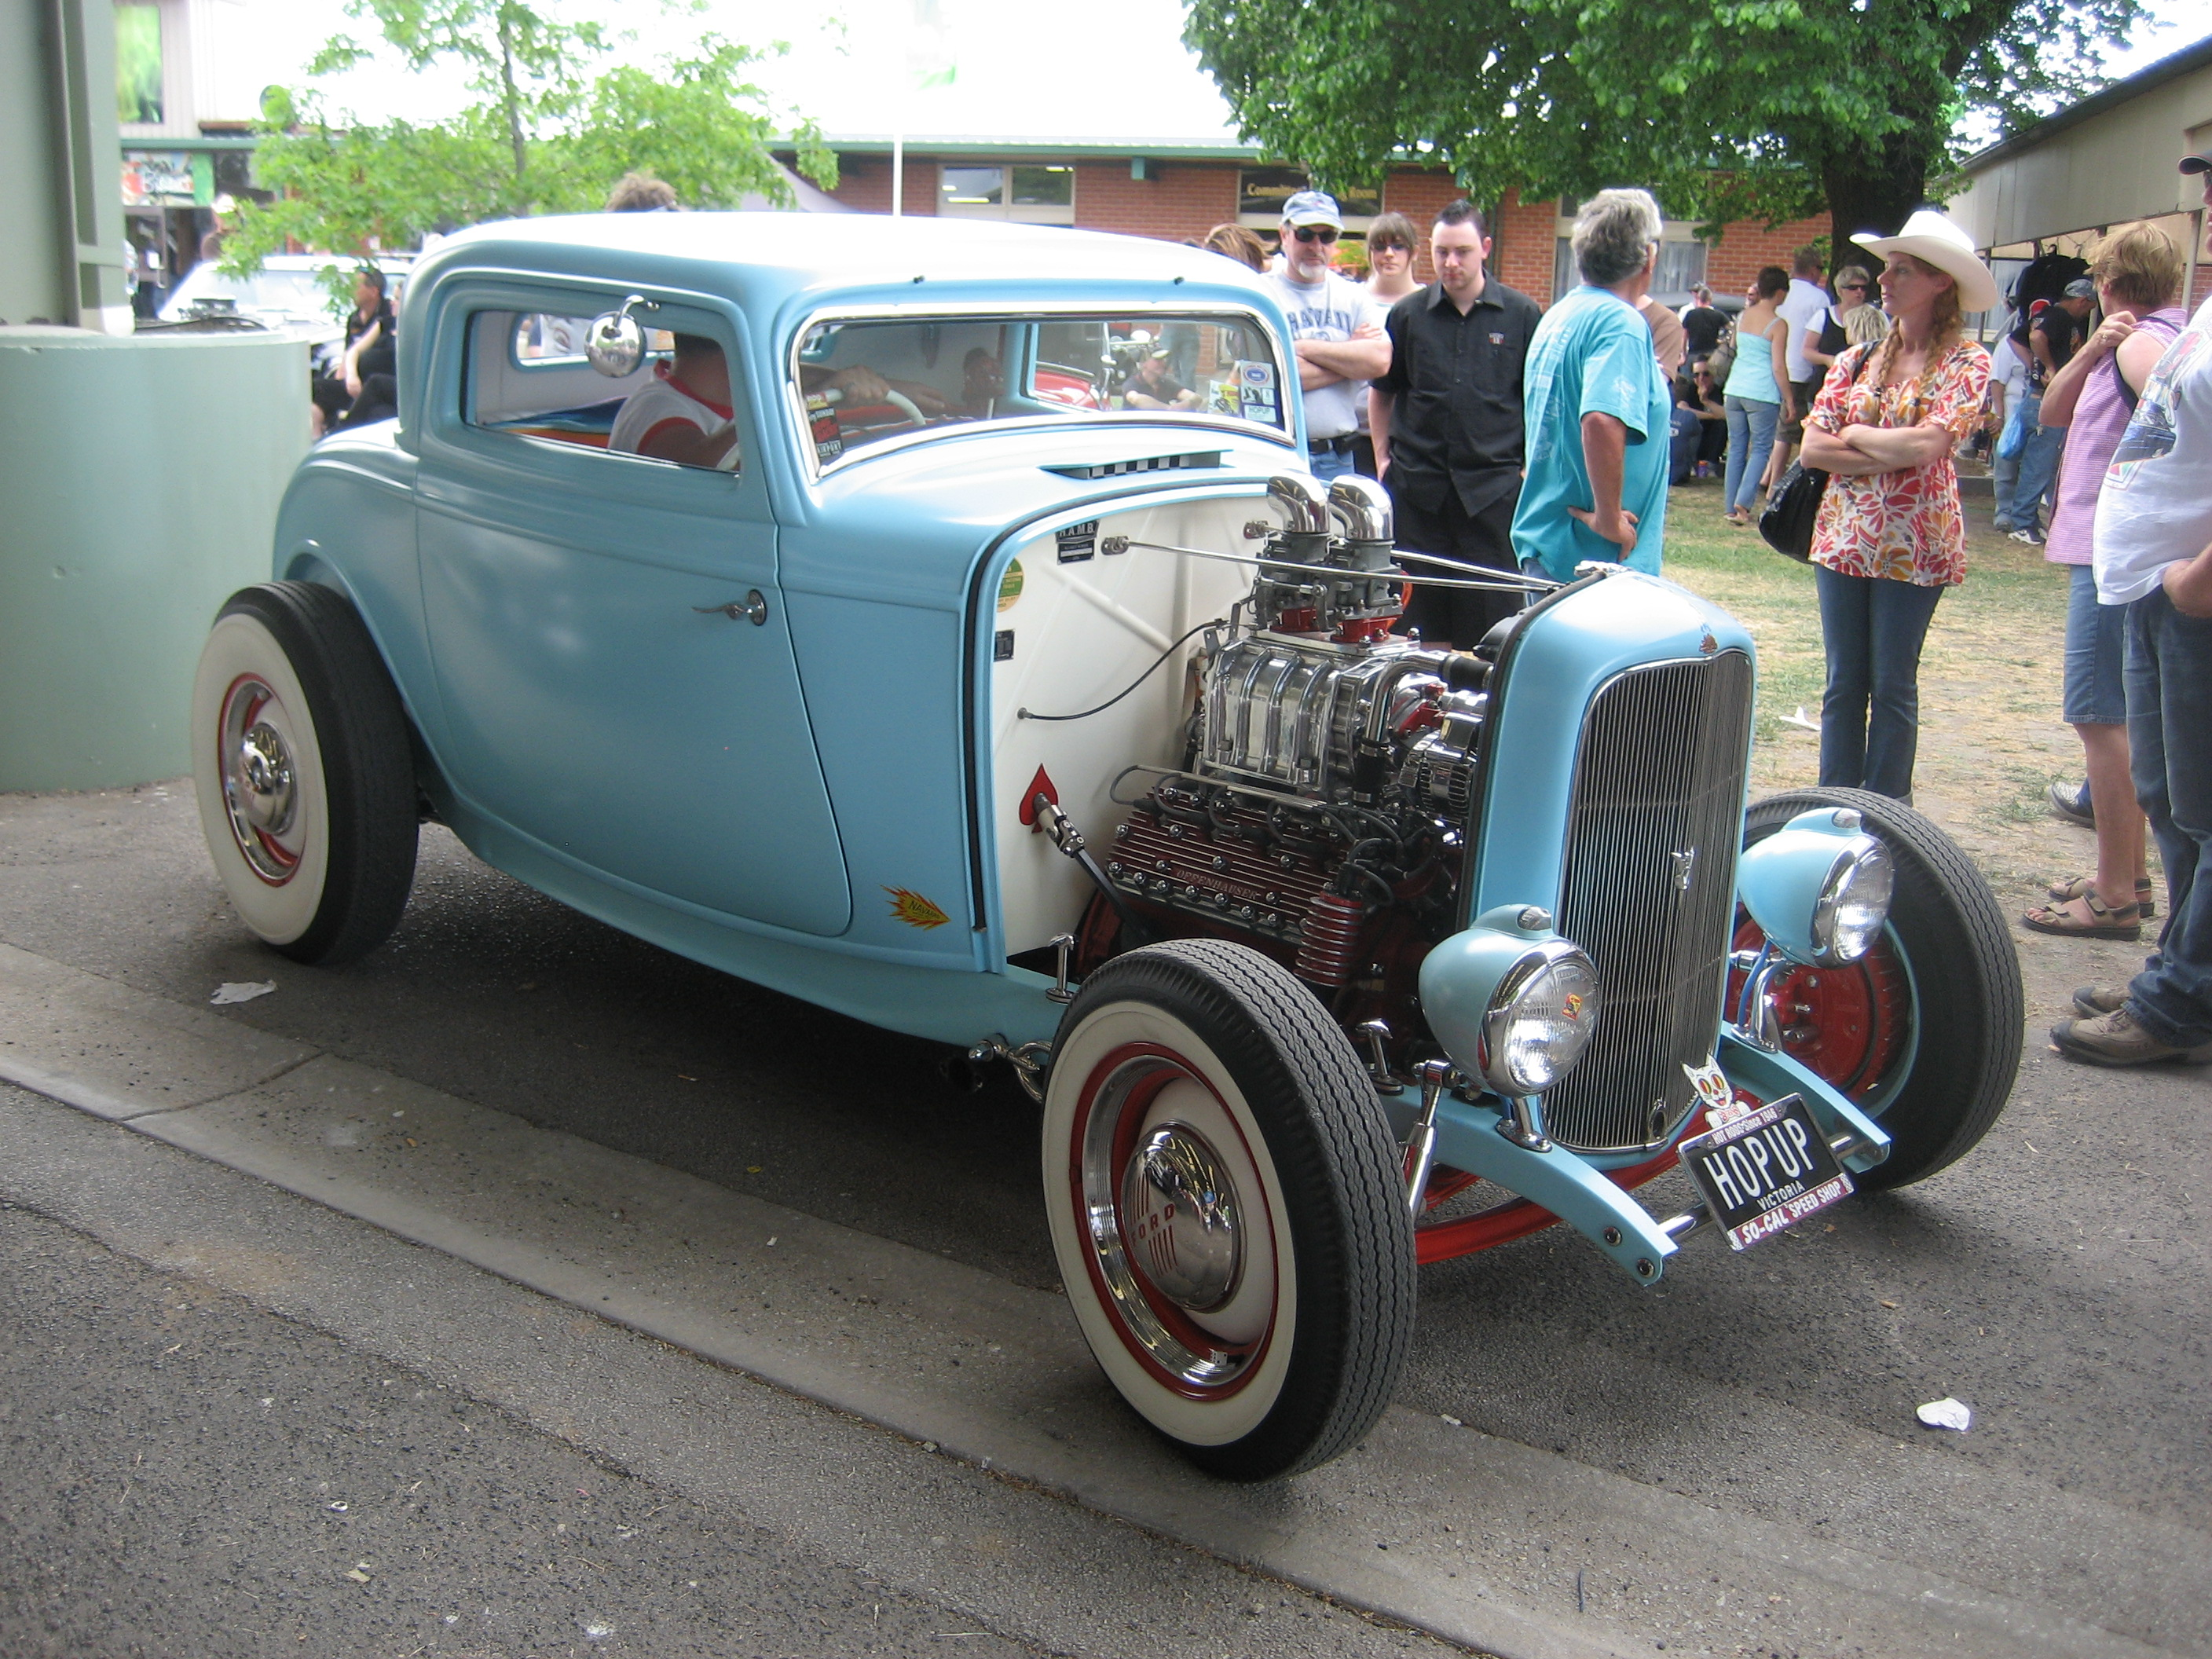 Hot Rod Project Cars For Sale